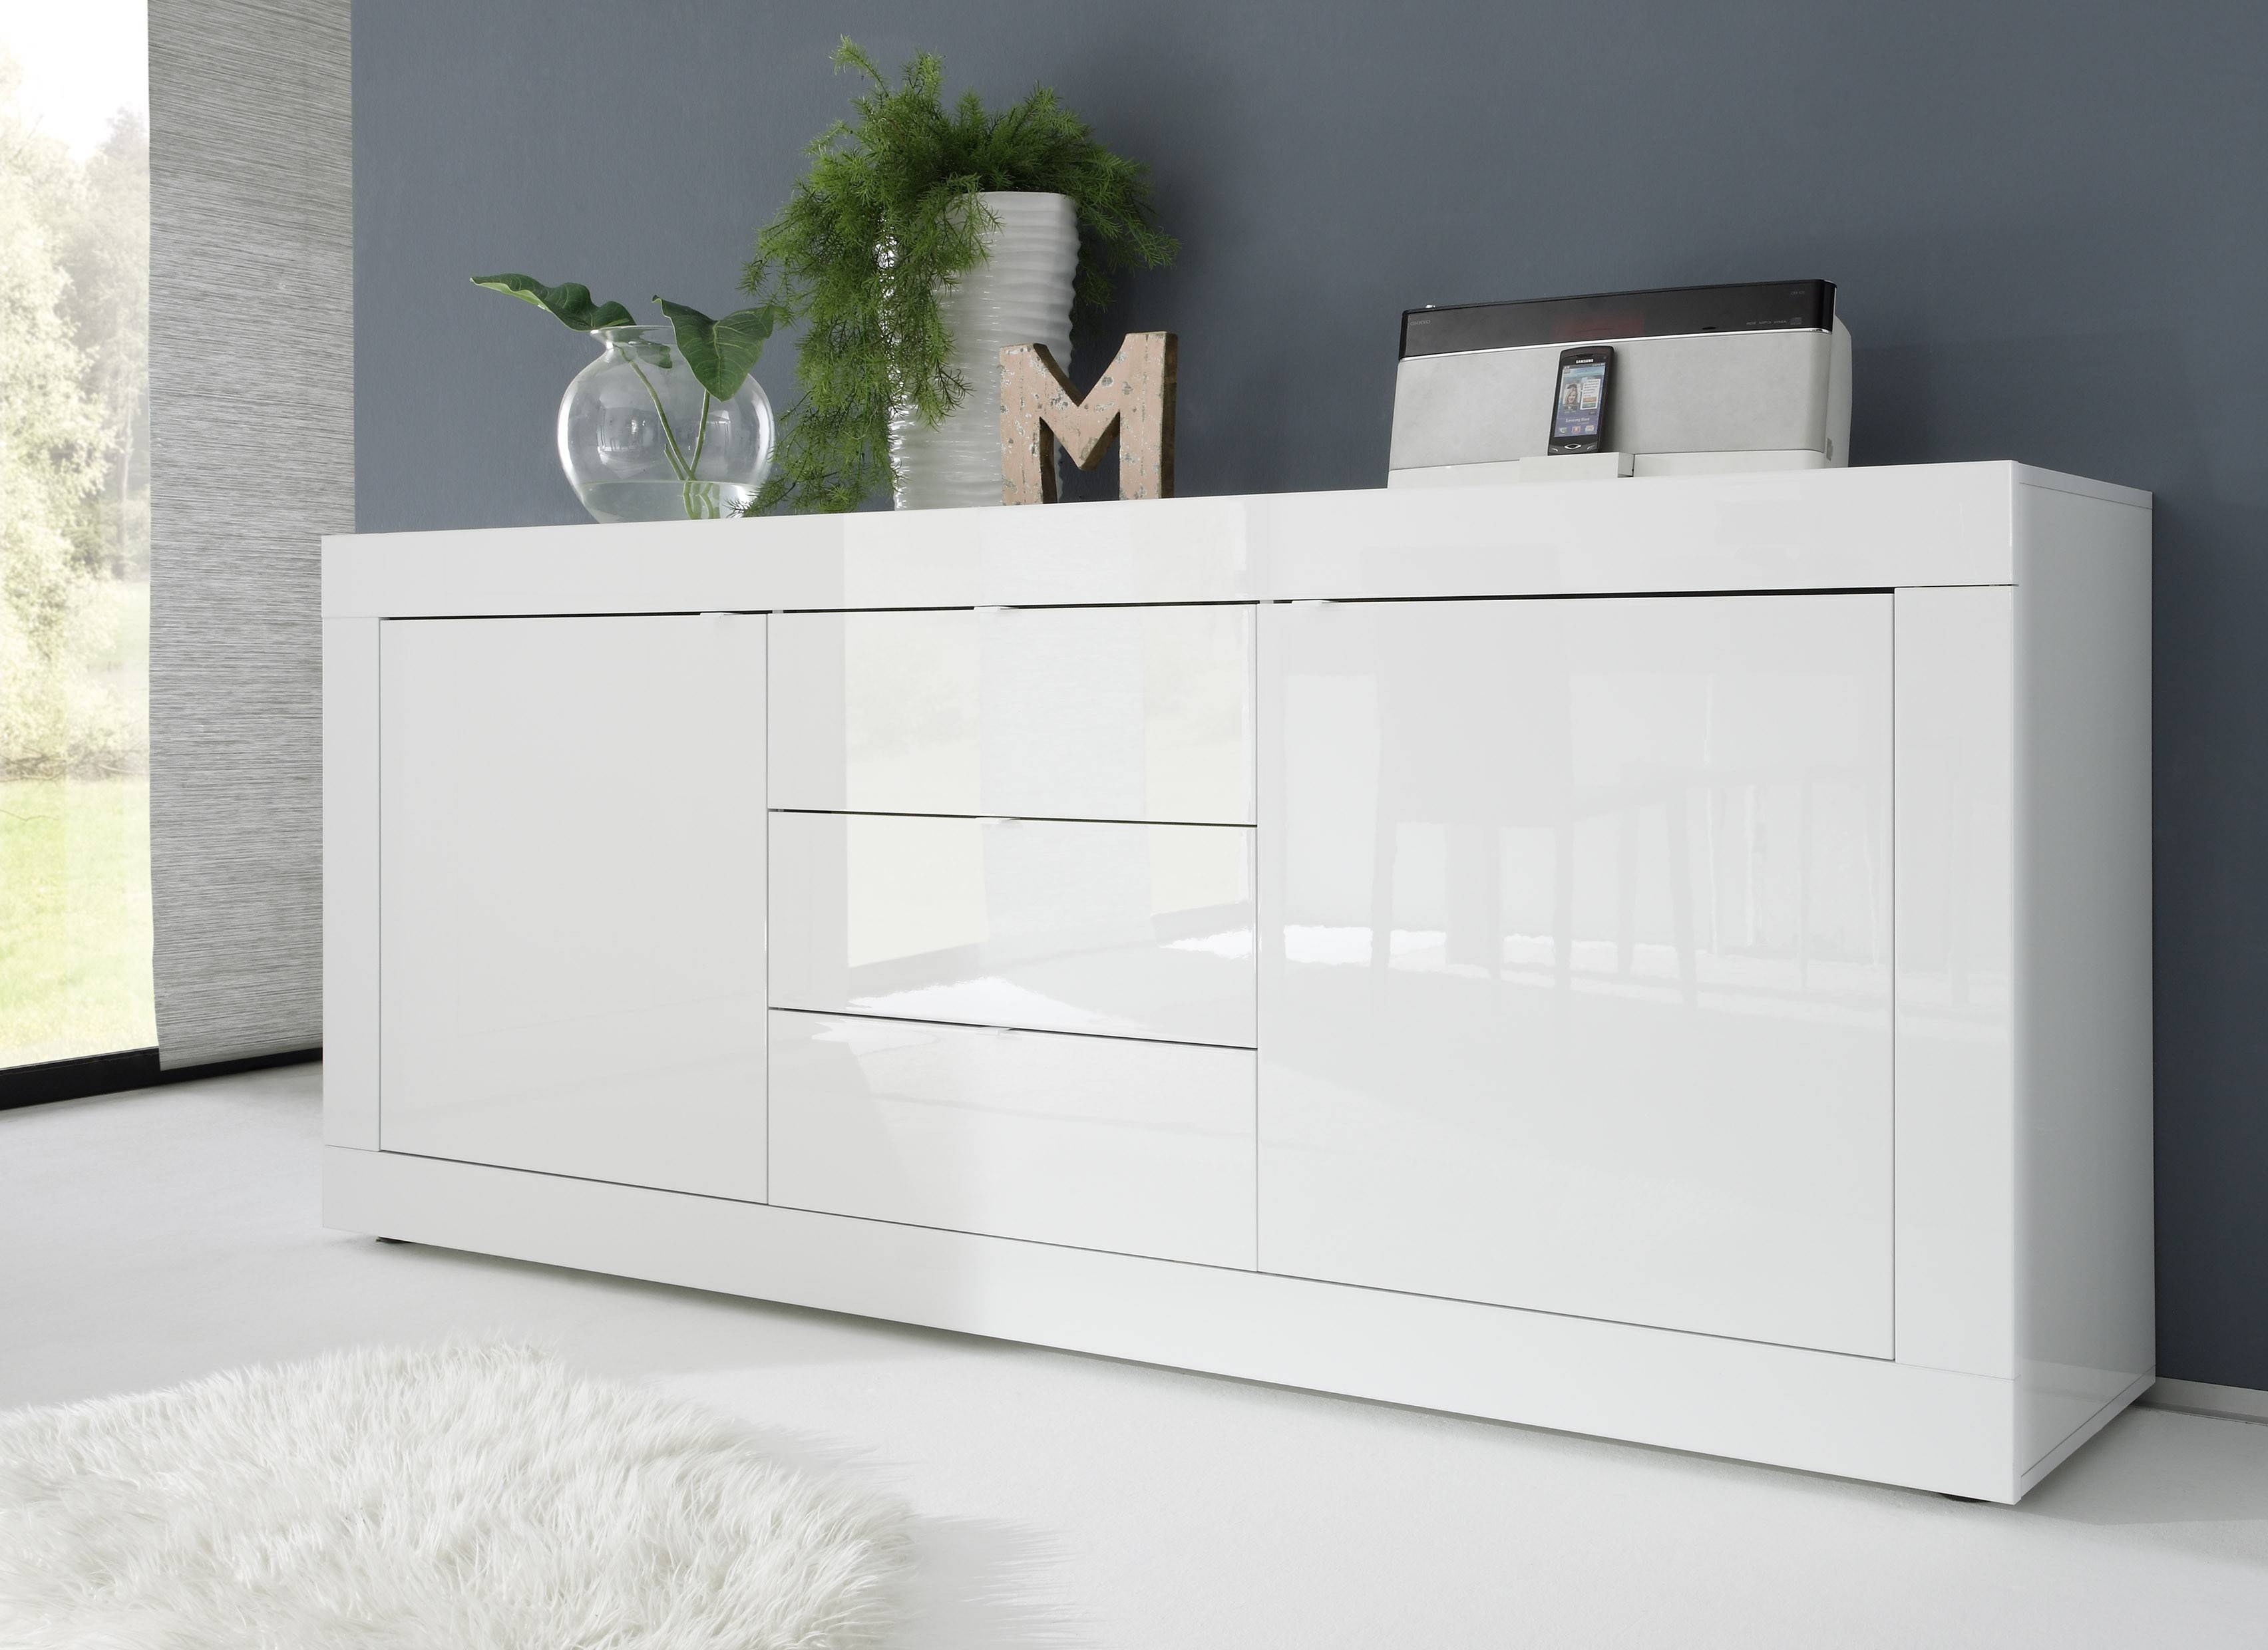 Popular Photo of White Modern Sideboard